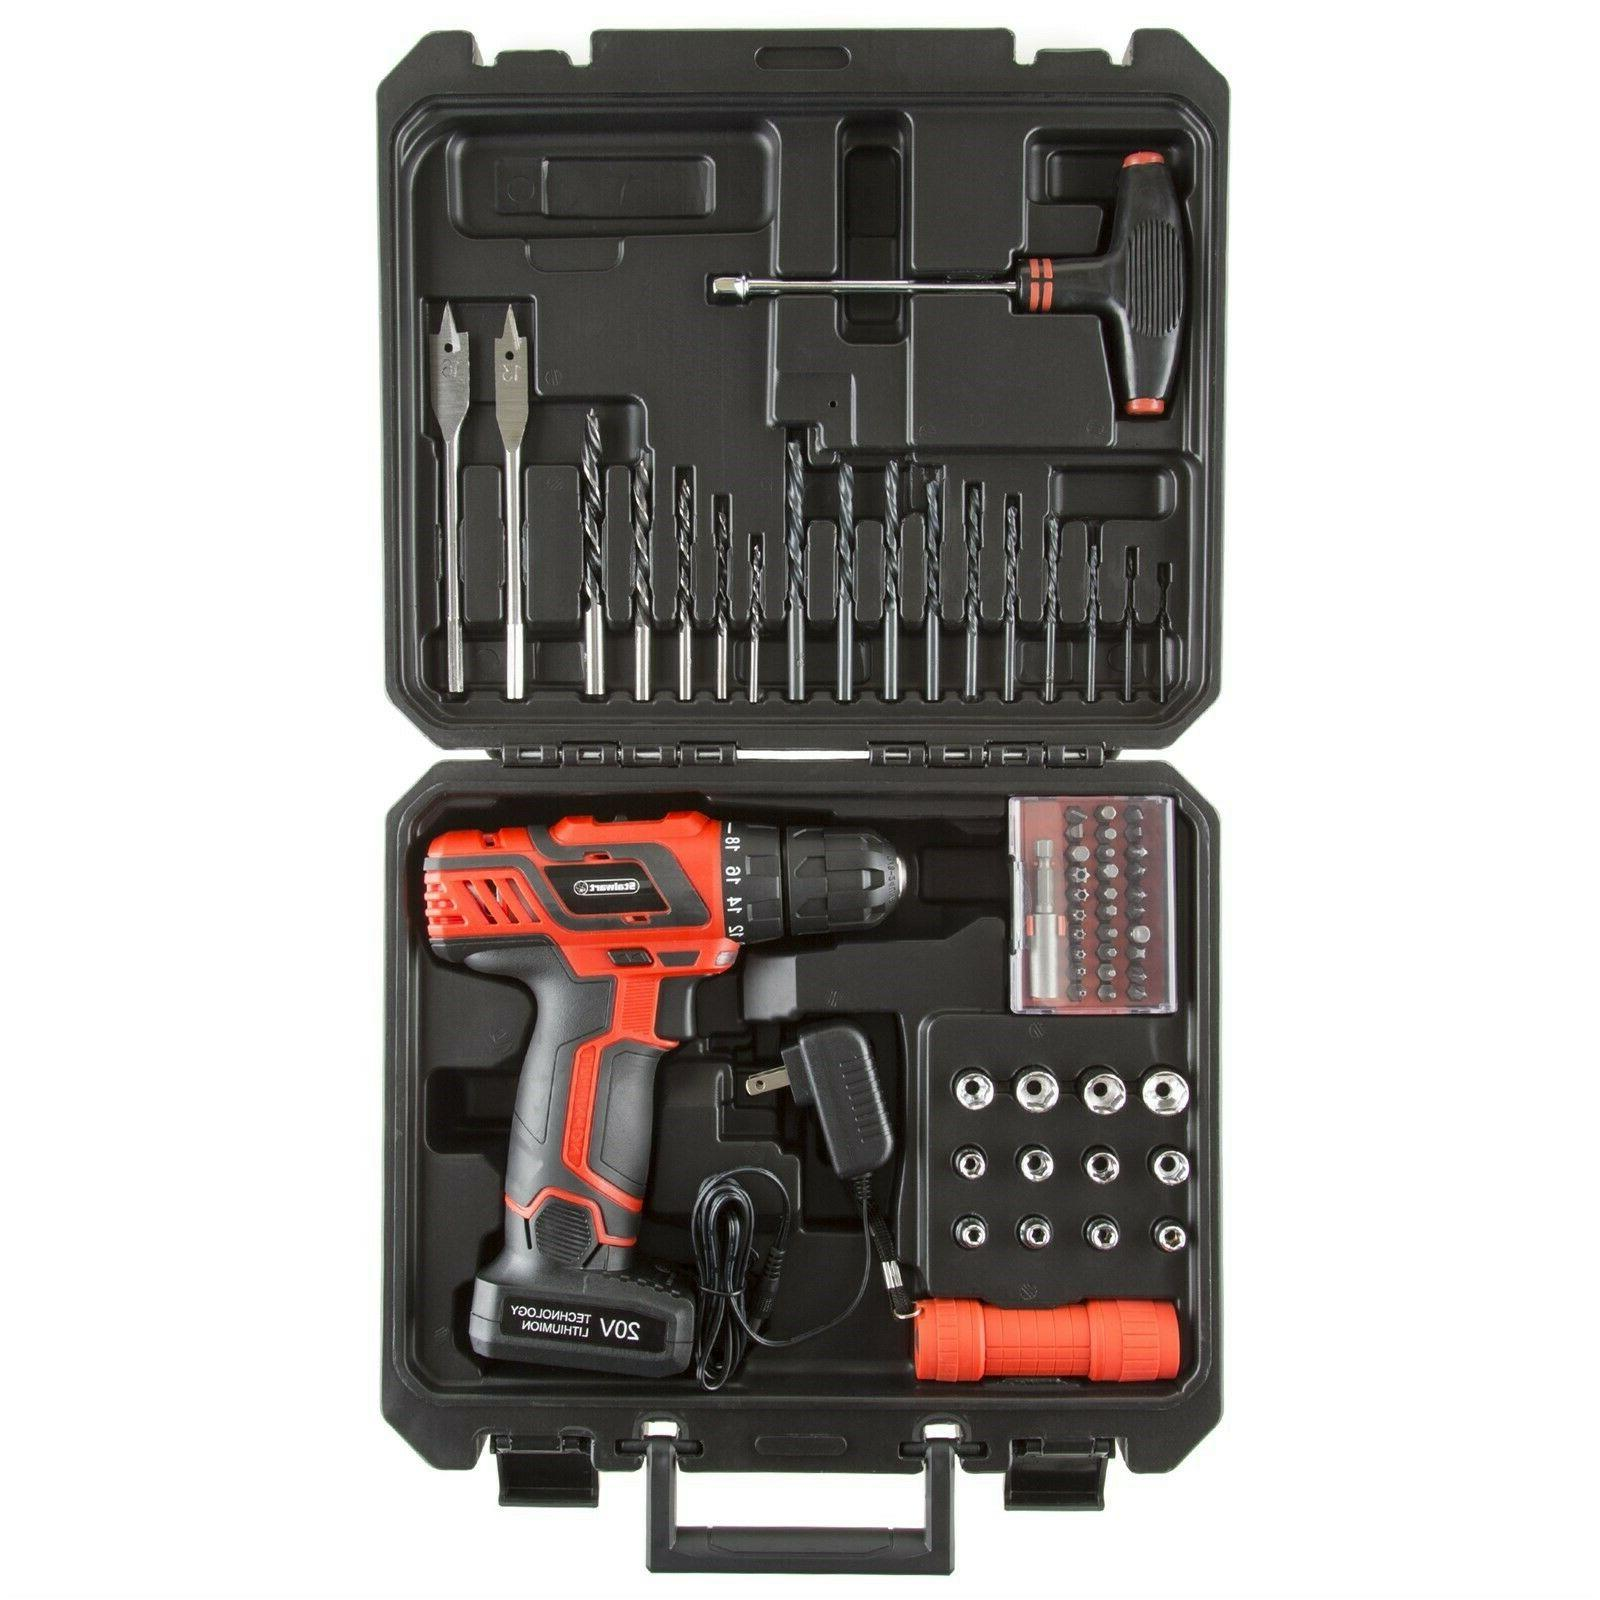 Stalwart 6 Electric Drill 3/8 In with